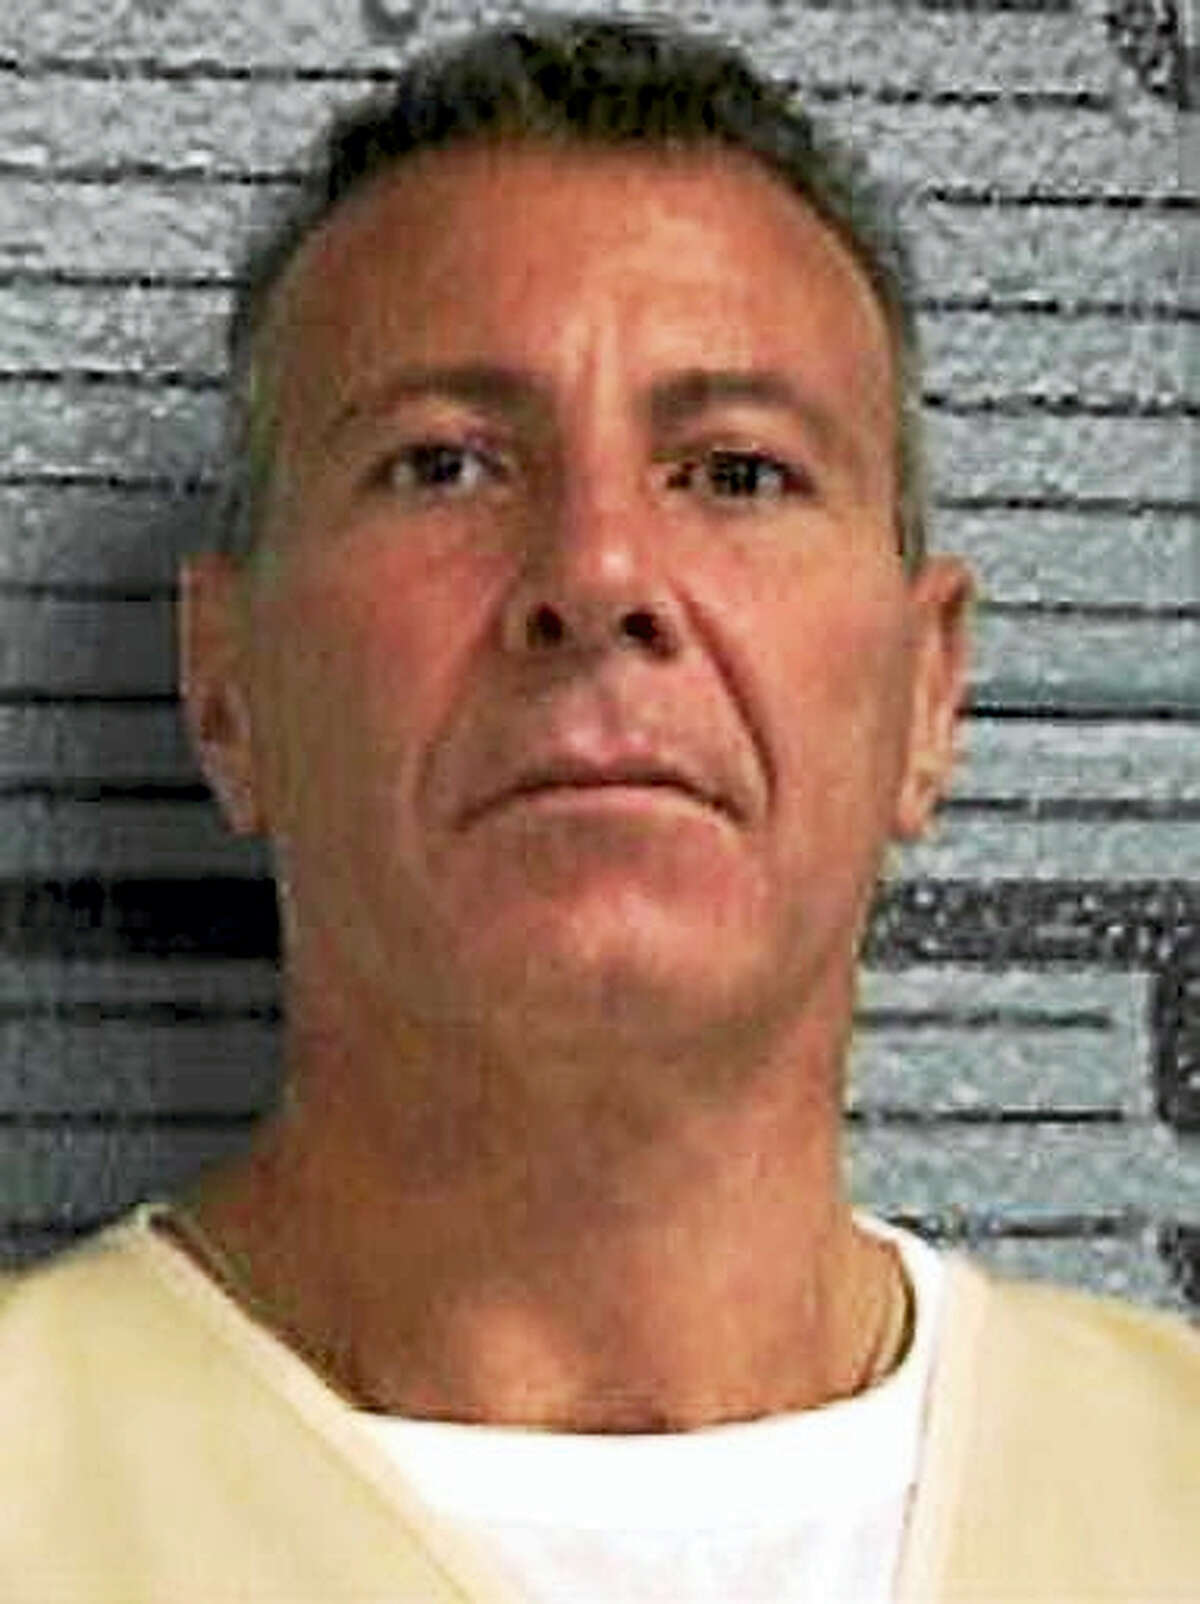 This undated inmate identification photo released Thursday, Jan. 5, 2017 by the Connecticut Department of Correction shows former Waterbury, Conn., mayor Philip Giordano, serving 37 years in prison after being convicted in 2003 on charges of sexually abusing two girls while in office. The U.S. Supreme Court said Monday, Jan. 9, 2017 it has refused to hear another appeal by Giordano. Justices previously refused to hear two earlier appeals.